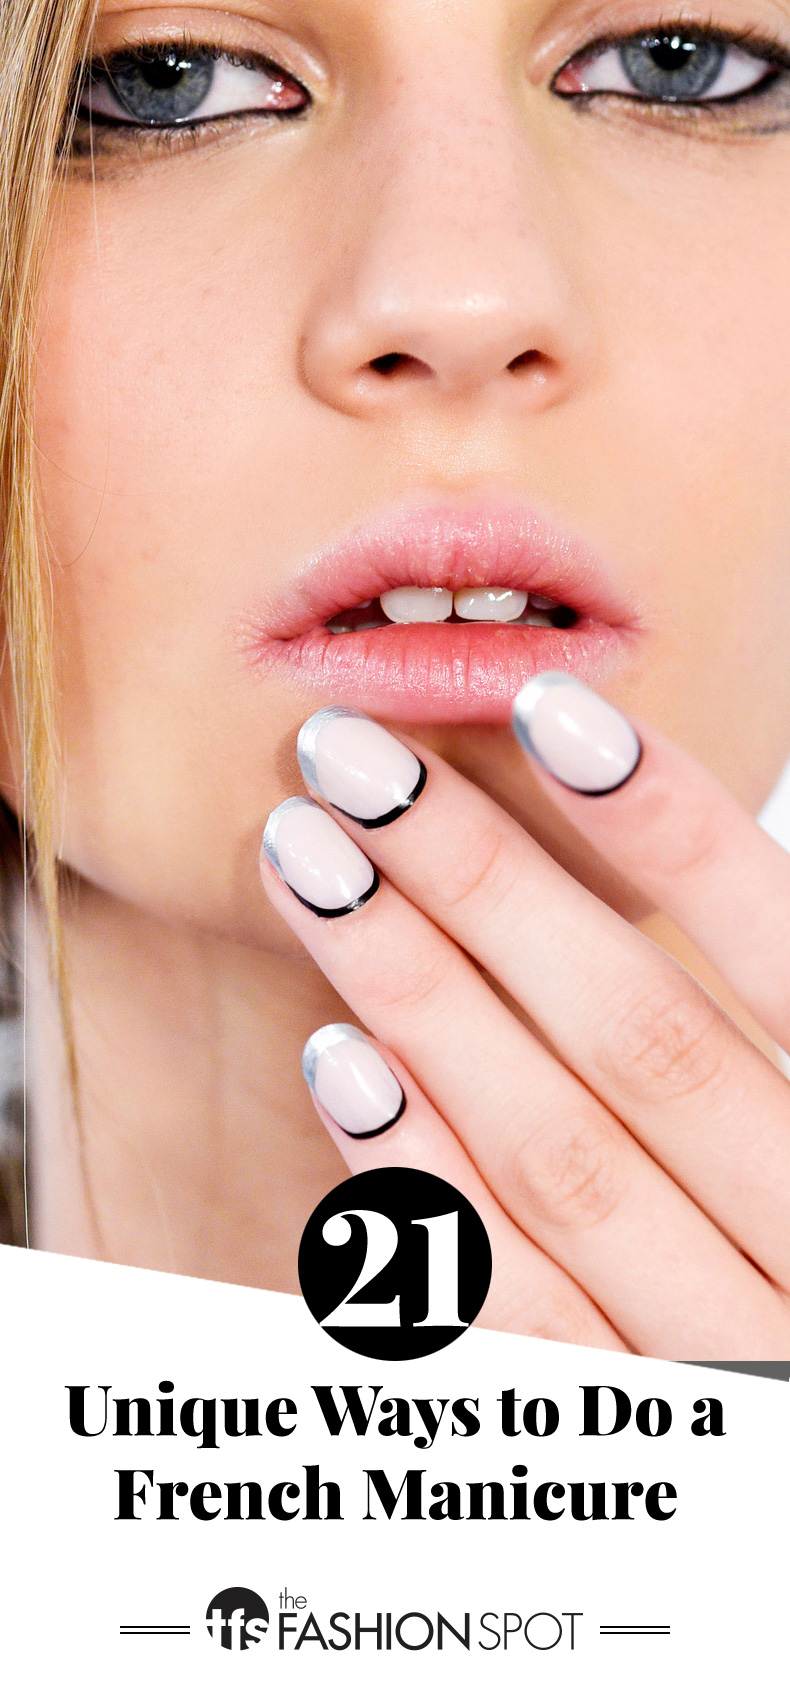 Nail Art Ideas: 21 Updated French Manicure Designs